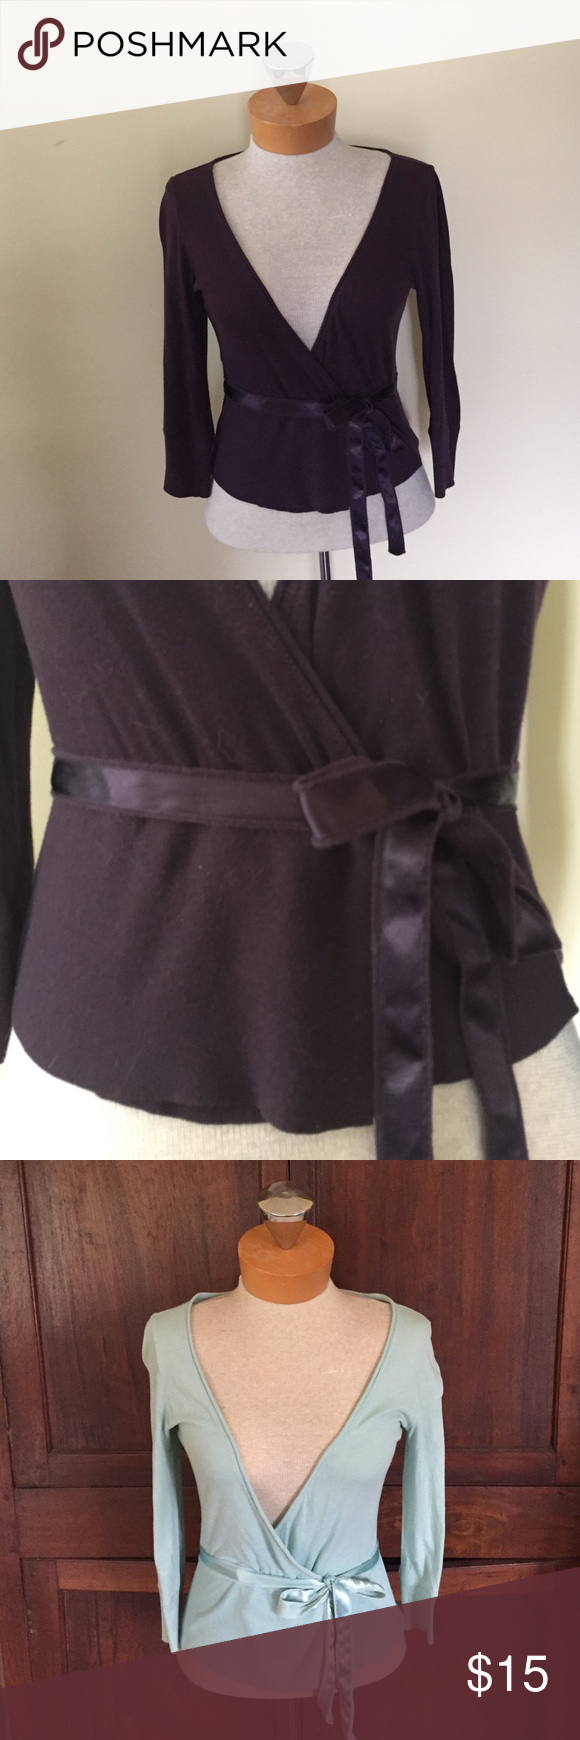 Deep purple (also in light blue) EXPRESS wrap top 3/4 length sleeve, cotton wrap style with satin ties around waist. One blue available, one deep purple. *Fits more like a small* Express Tops